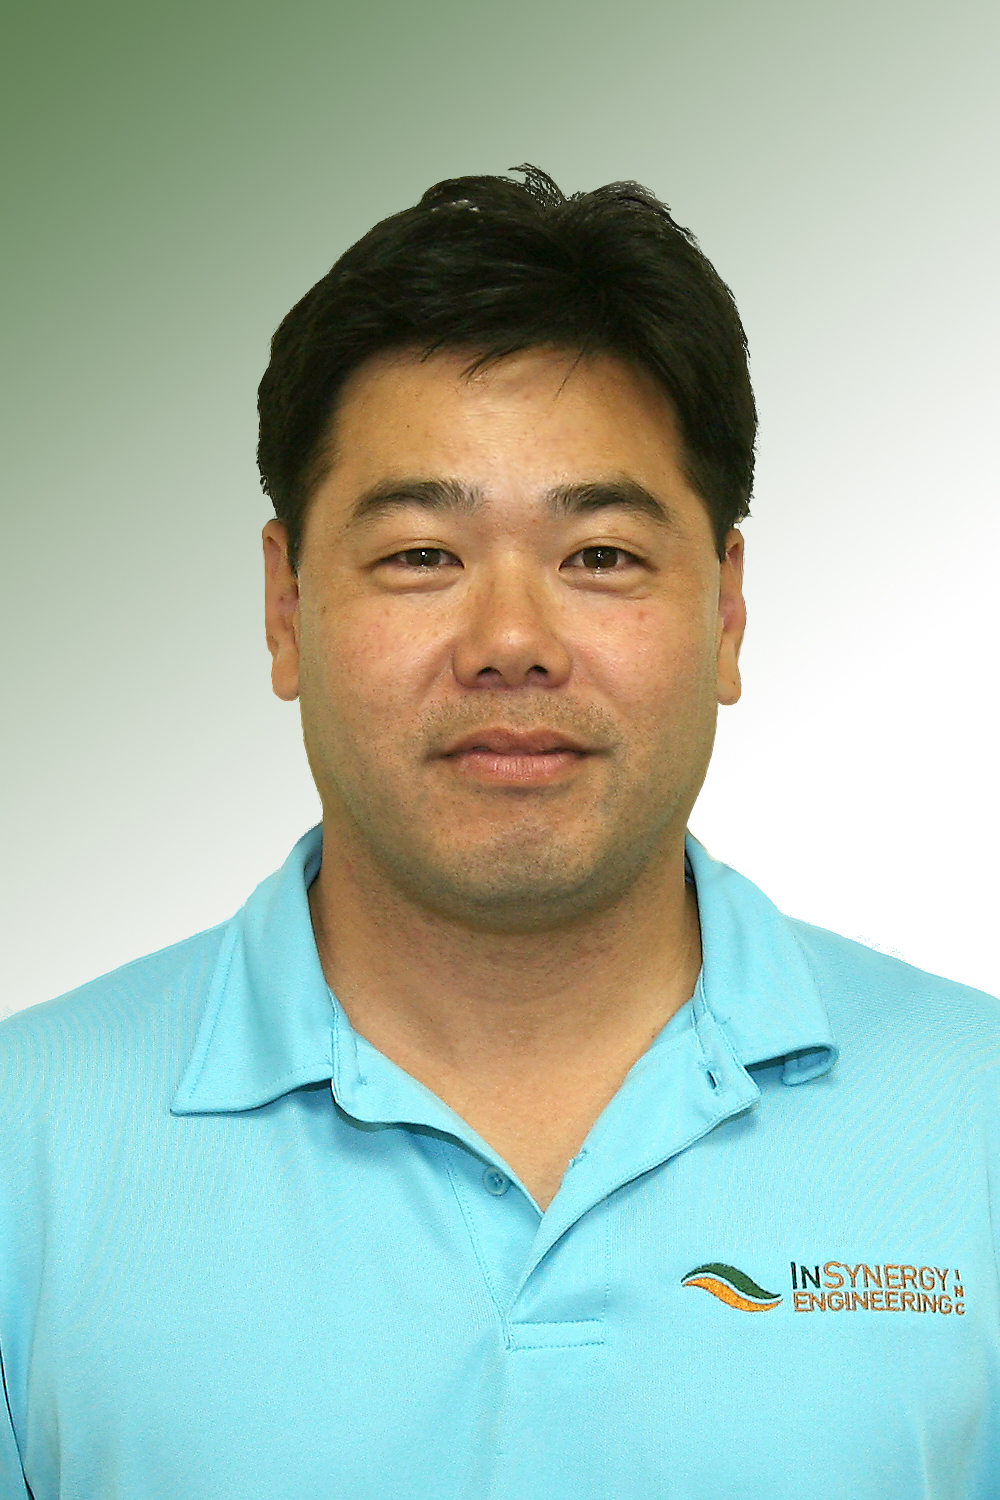 Professional Registration  2005 Mechanical Engineering, Hawaii (11797)   Professional Experience  Deron Jyo has 22 years of mechanical engineering experience and is responsible for supervising a portion of the mechanical engineering staff at InSynergy Engineering. Inc. His experience includes the design of mechanical systems for commercial, residential, institutional, resort, and healthcare facilities for both the private and public sectors.Deron also specializes in Department of Defense (DOD) work and has worked on various Army, Air Force, Navy and Marine Corps projects in Hawaii, Guam, Korea, and Saipan, and Japan. He is a member of the American Society of Military Engineers (ASME) and American Society of Heating, Refrigerating, and Air-Conditioning Engineers (ASHRAE).